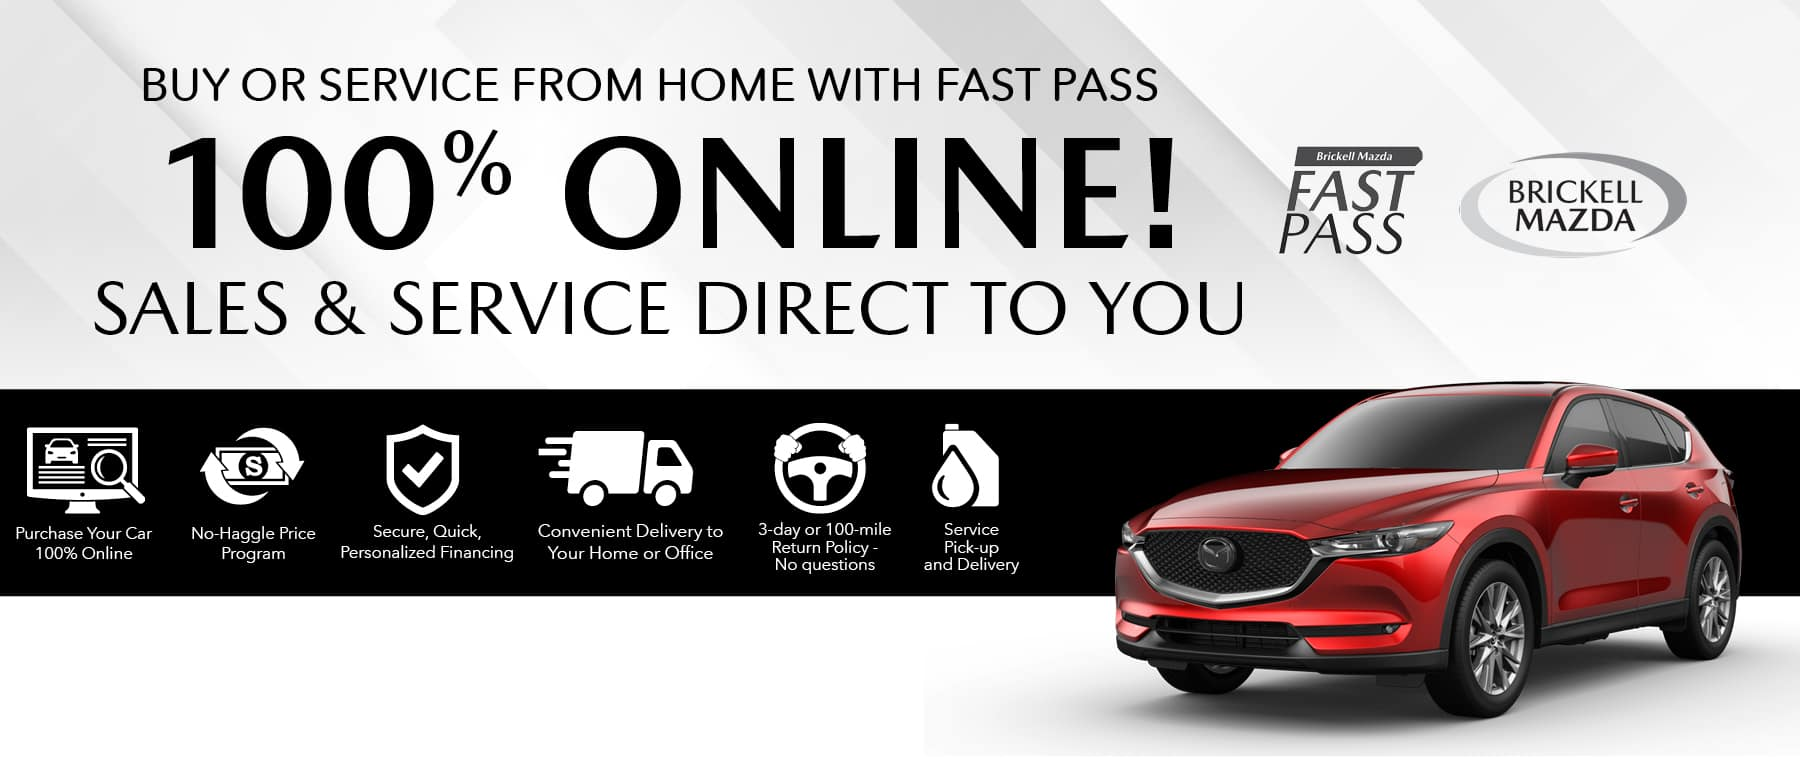 Red Mazda Fast Pass 100% Online